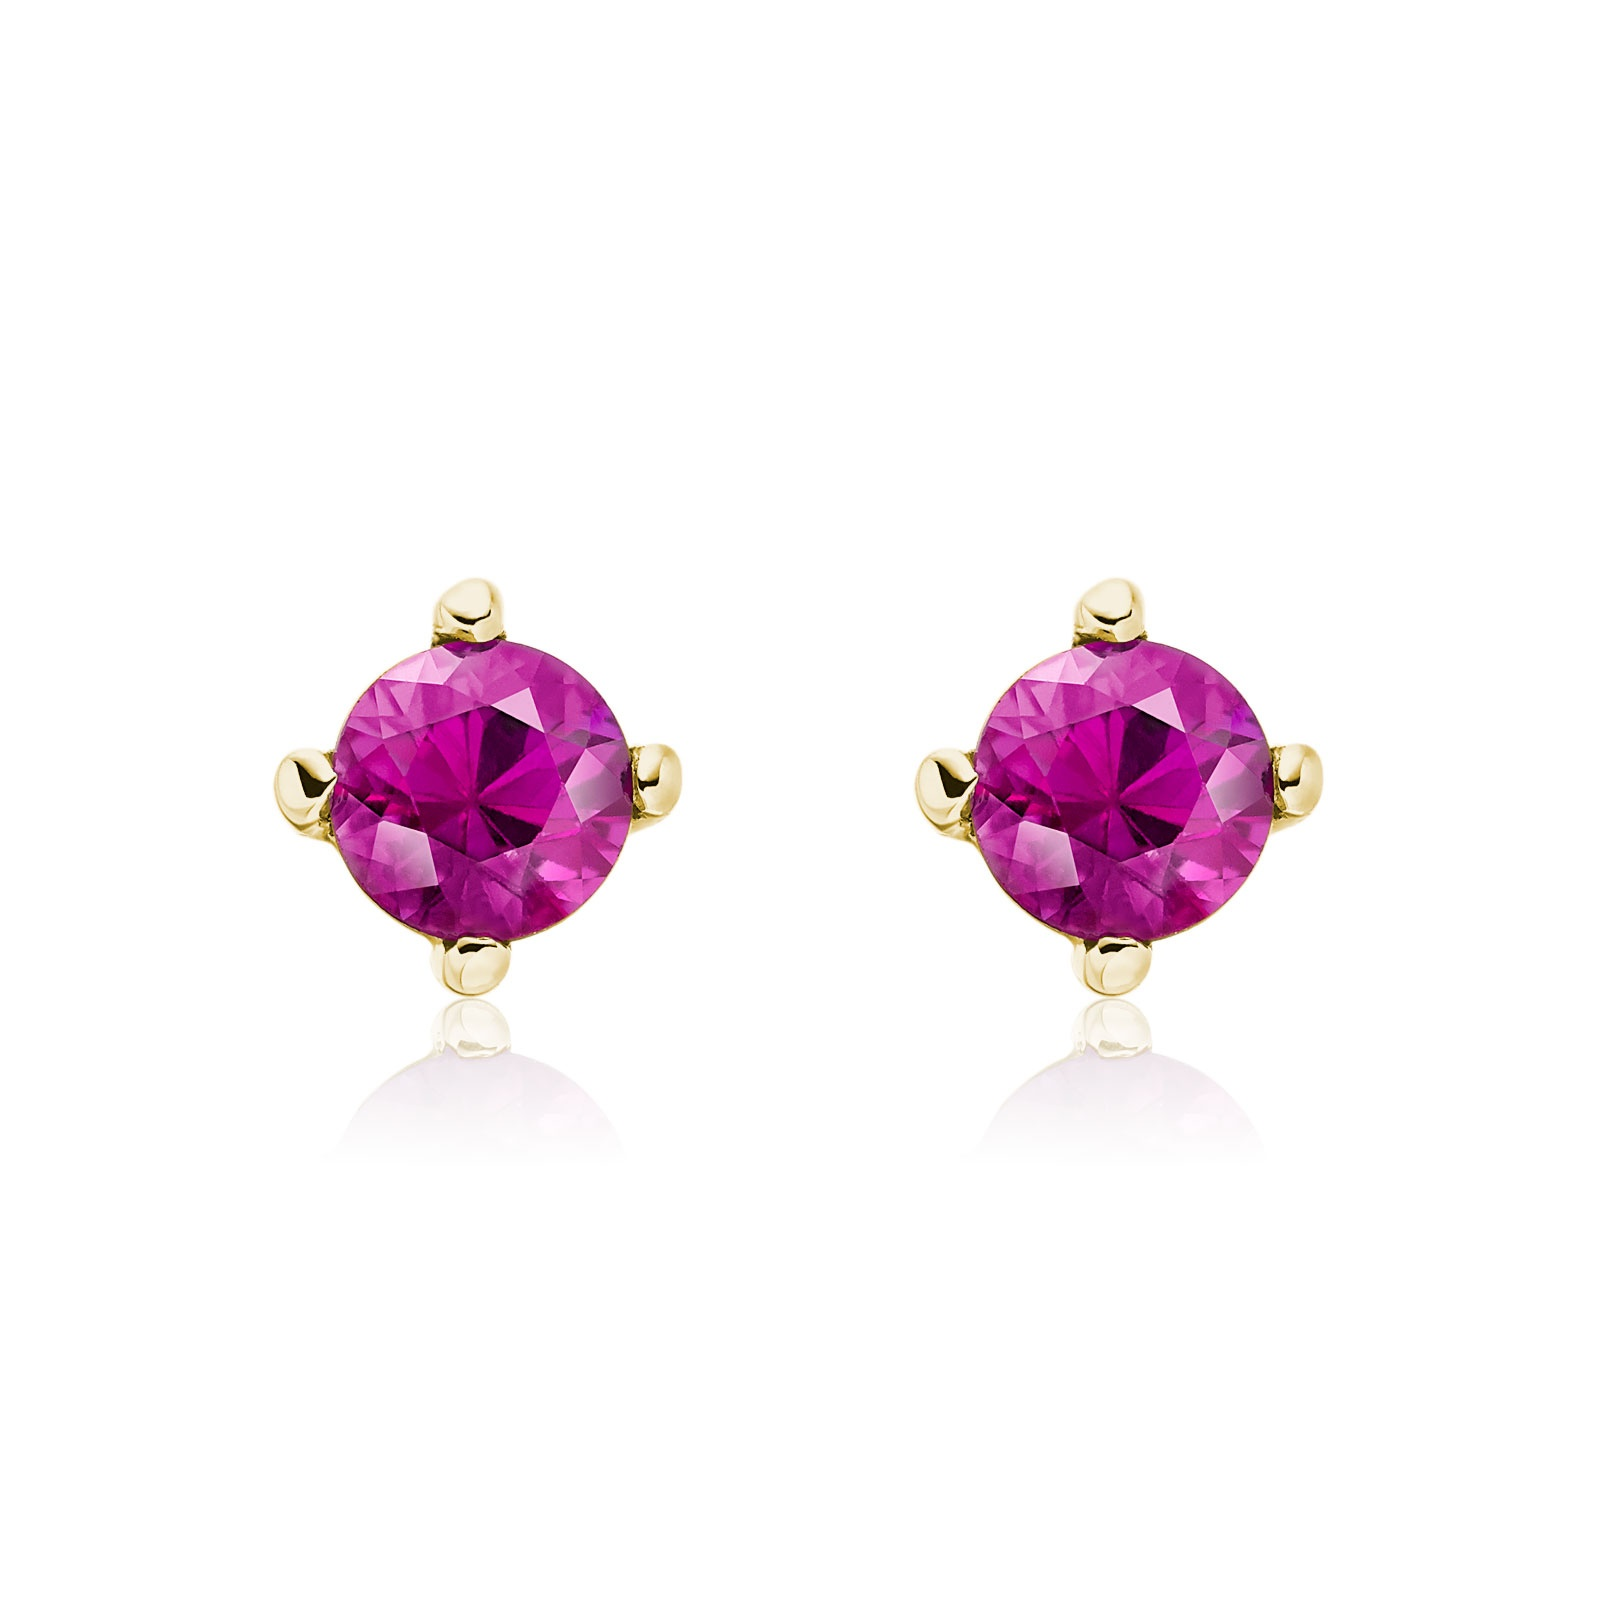 Pink Ruby Stud Earrings in 18 Carat Yellow Gold-1